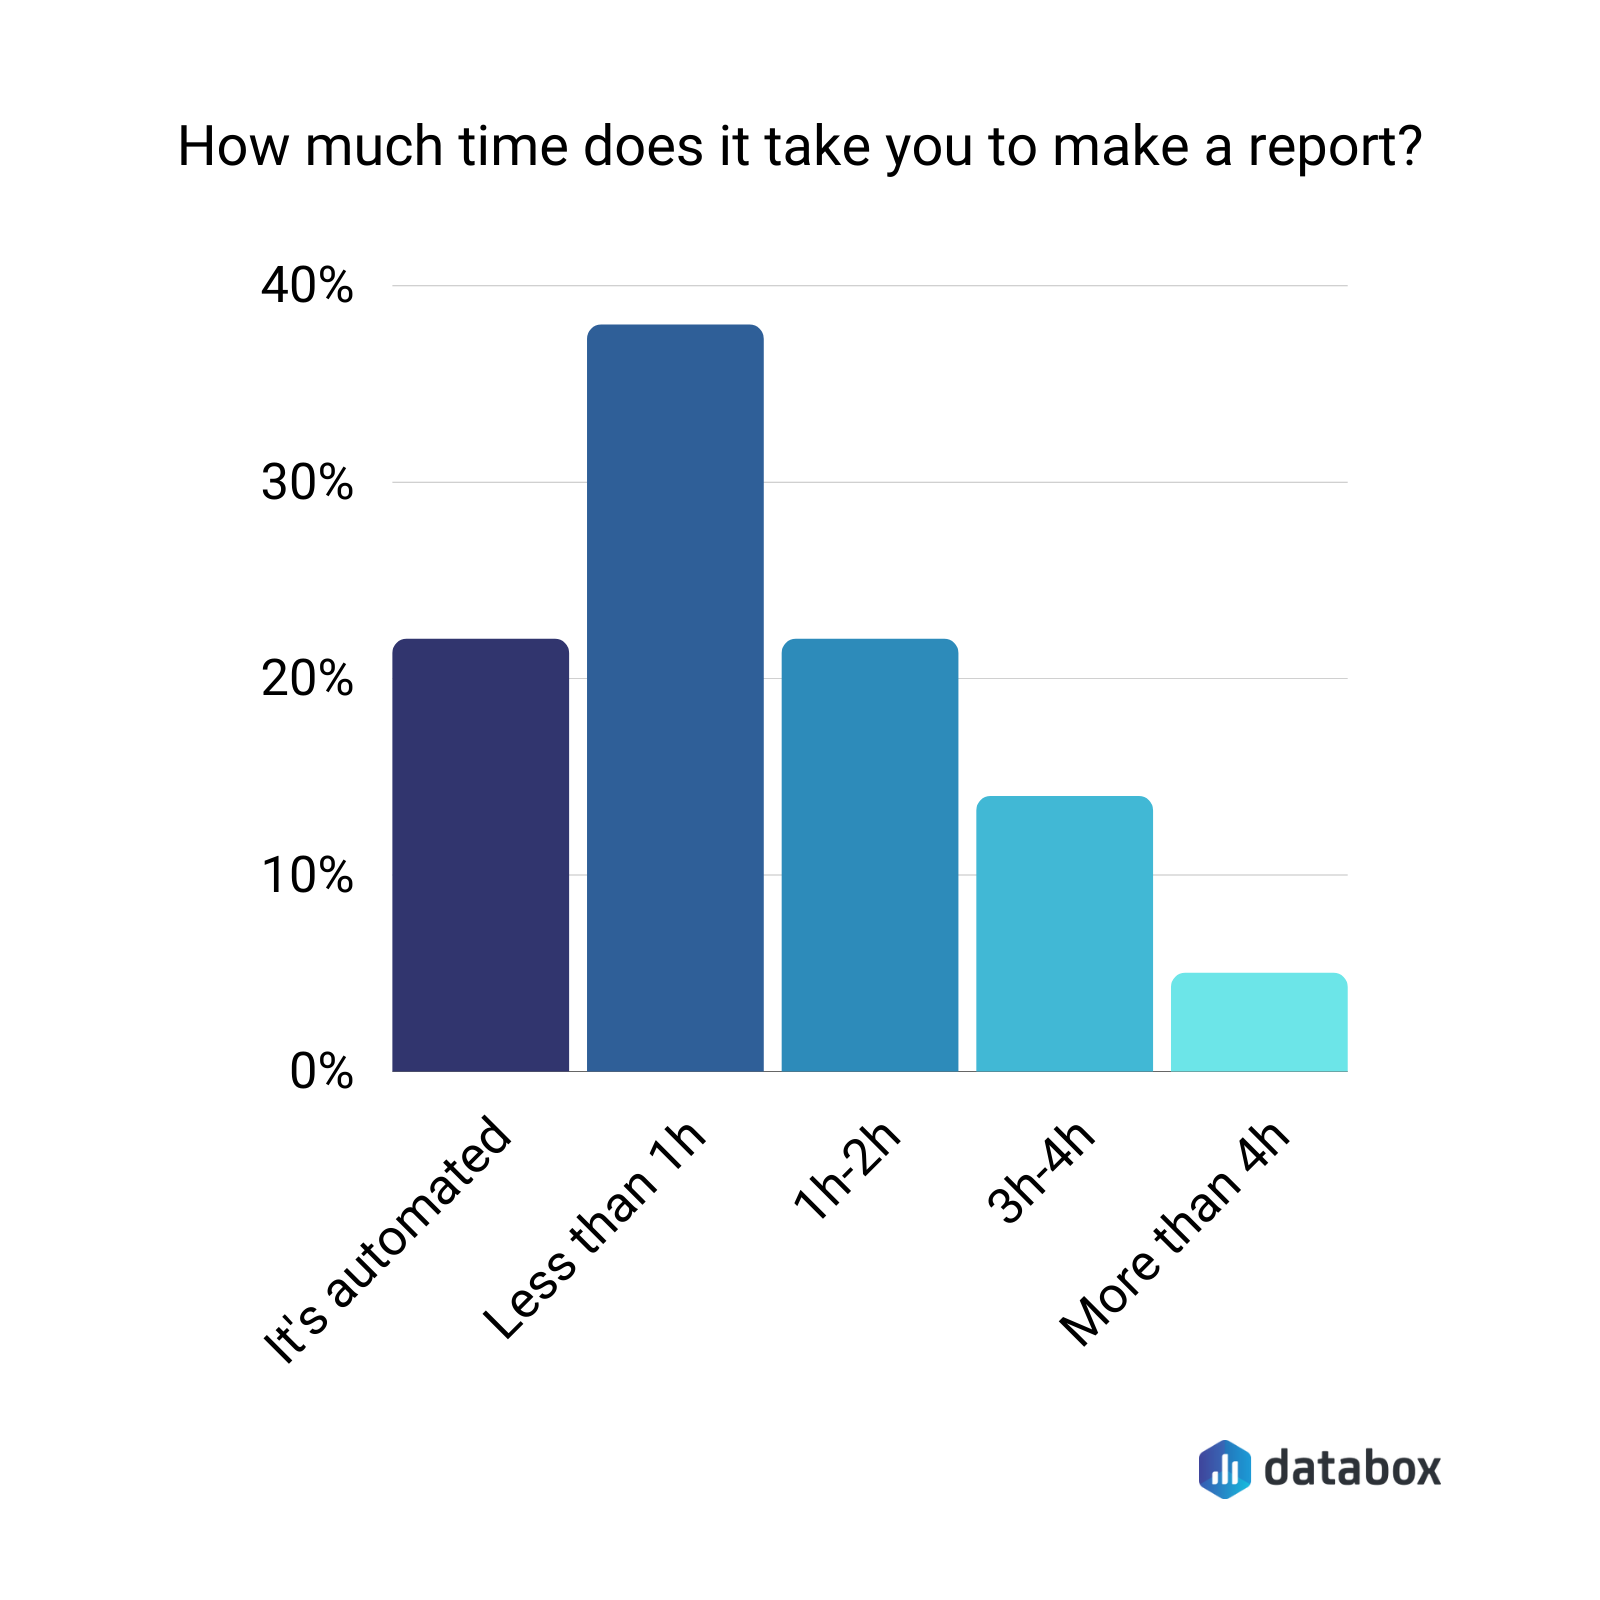 How much time does it take you to make a report?